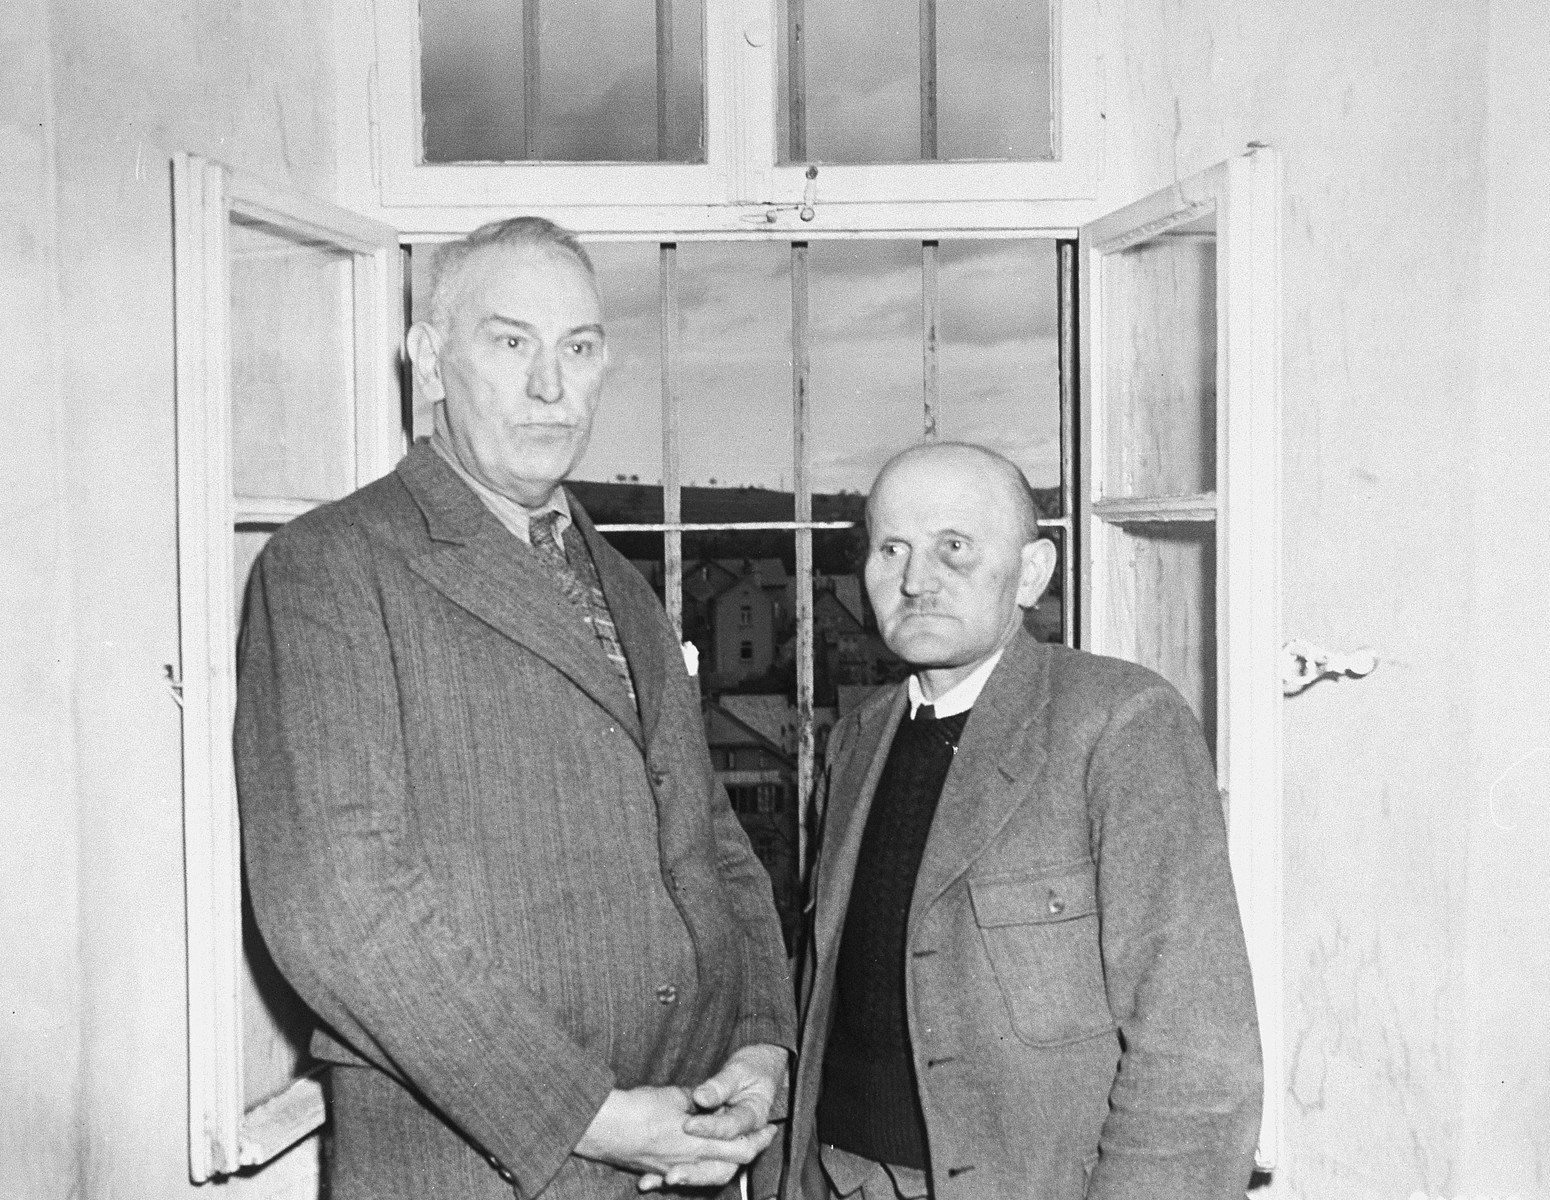 Dr. Adolf Wahlmann (left), chief physician at the Hadamar Institute, and Karl Willig (right), assistant male nurse, pose next to a barred window at the euthanasia facility where they are being held prisoner by American authorities.  The photograph was taken by an American military photographer soon after the liberation.